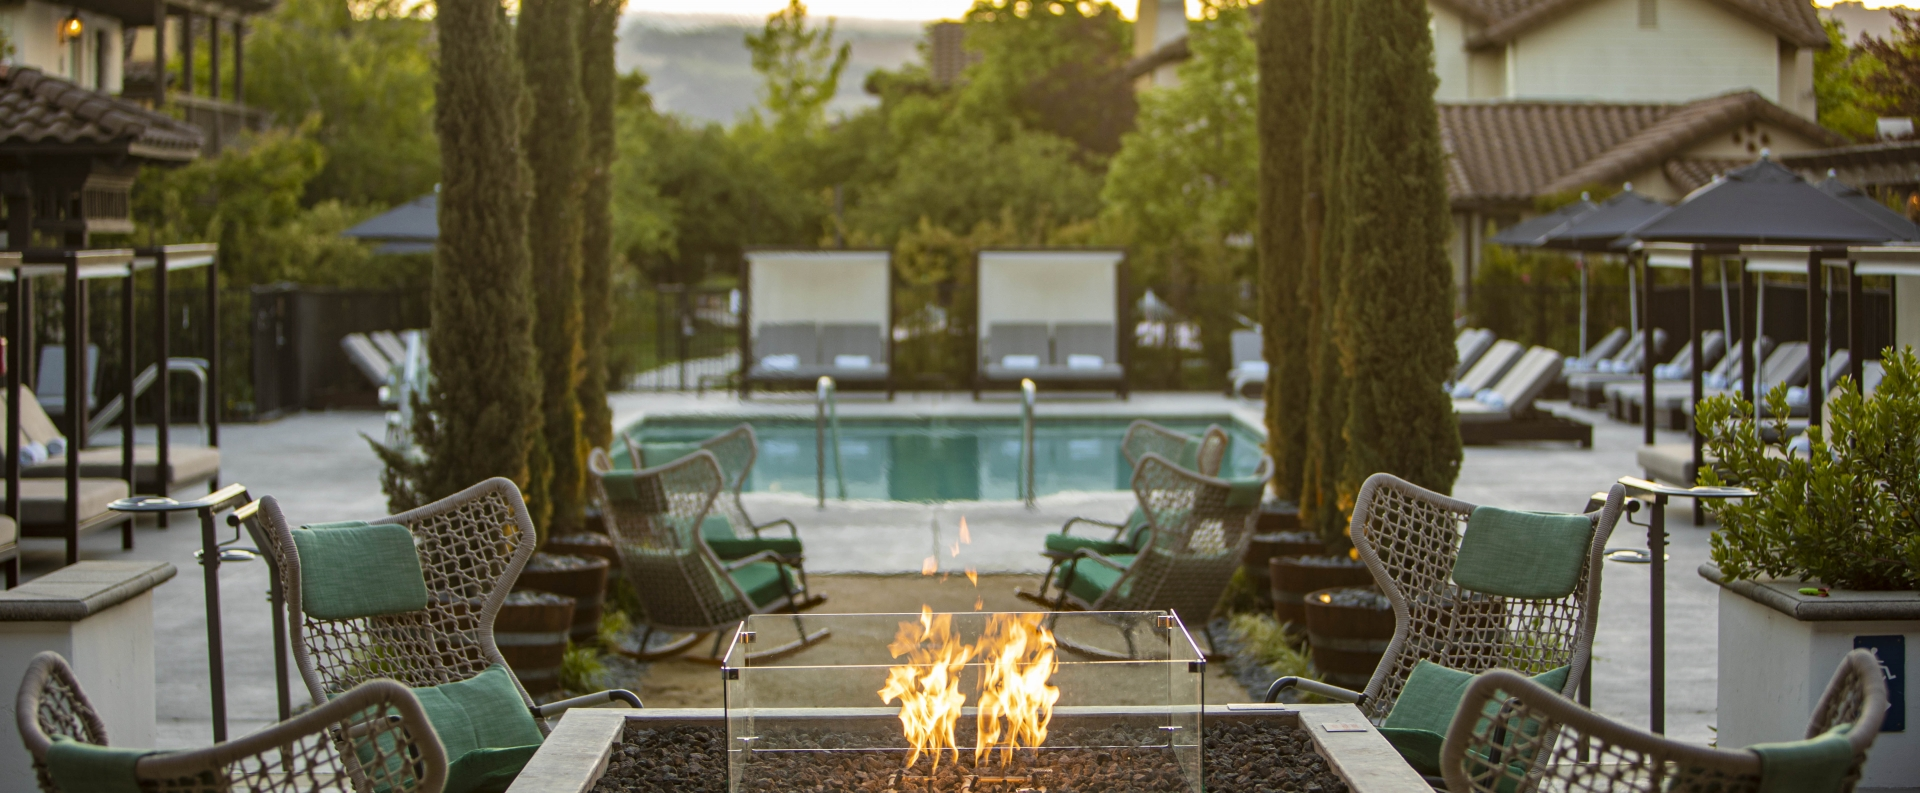 Outdoor fireplace at the Lodge at Sonoma